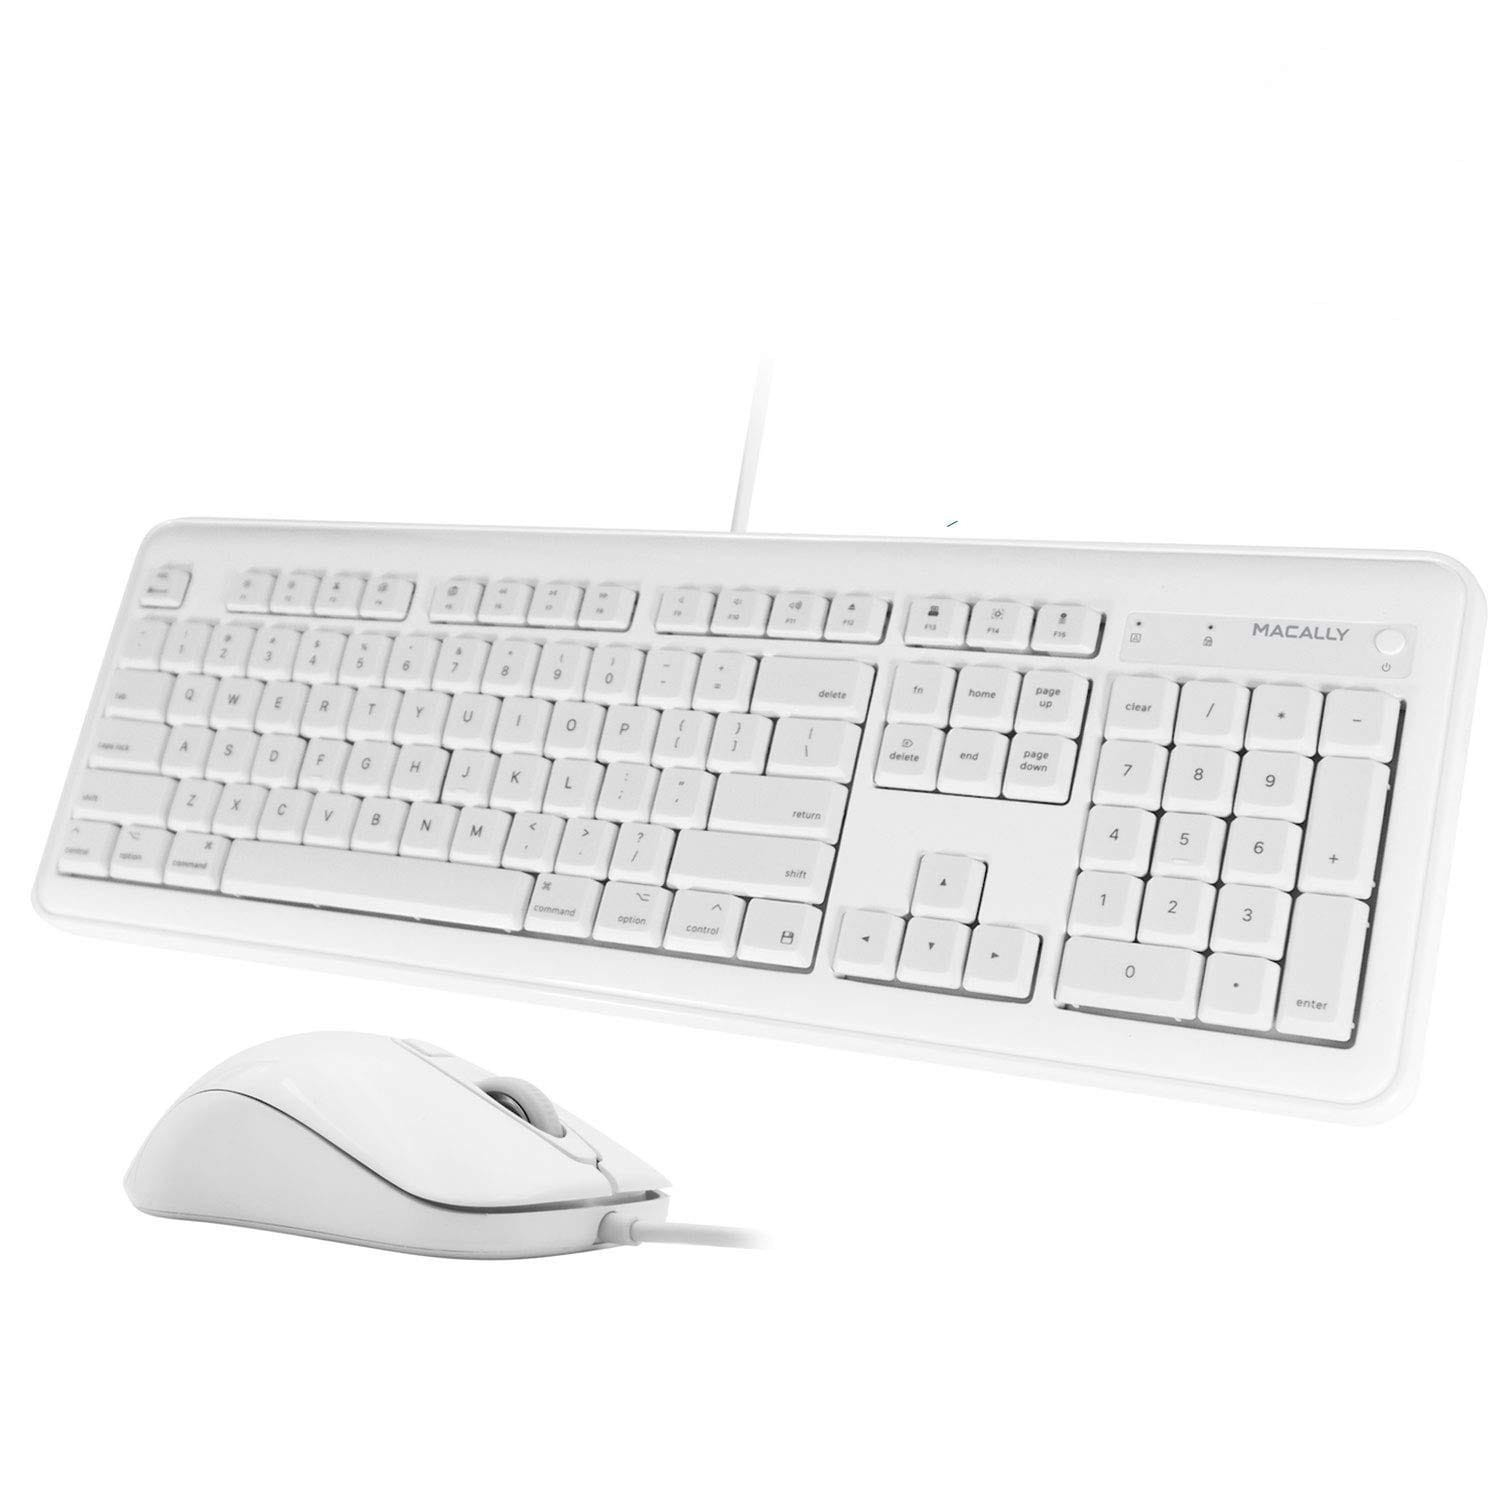 Macally 104 Key USB Wired Keyboard with 2 USB Port Hub and Mouse Combo for Mac or PC - White, XKEYHUBCOMBO